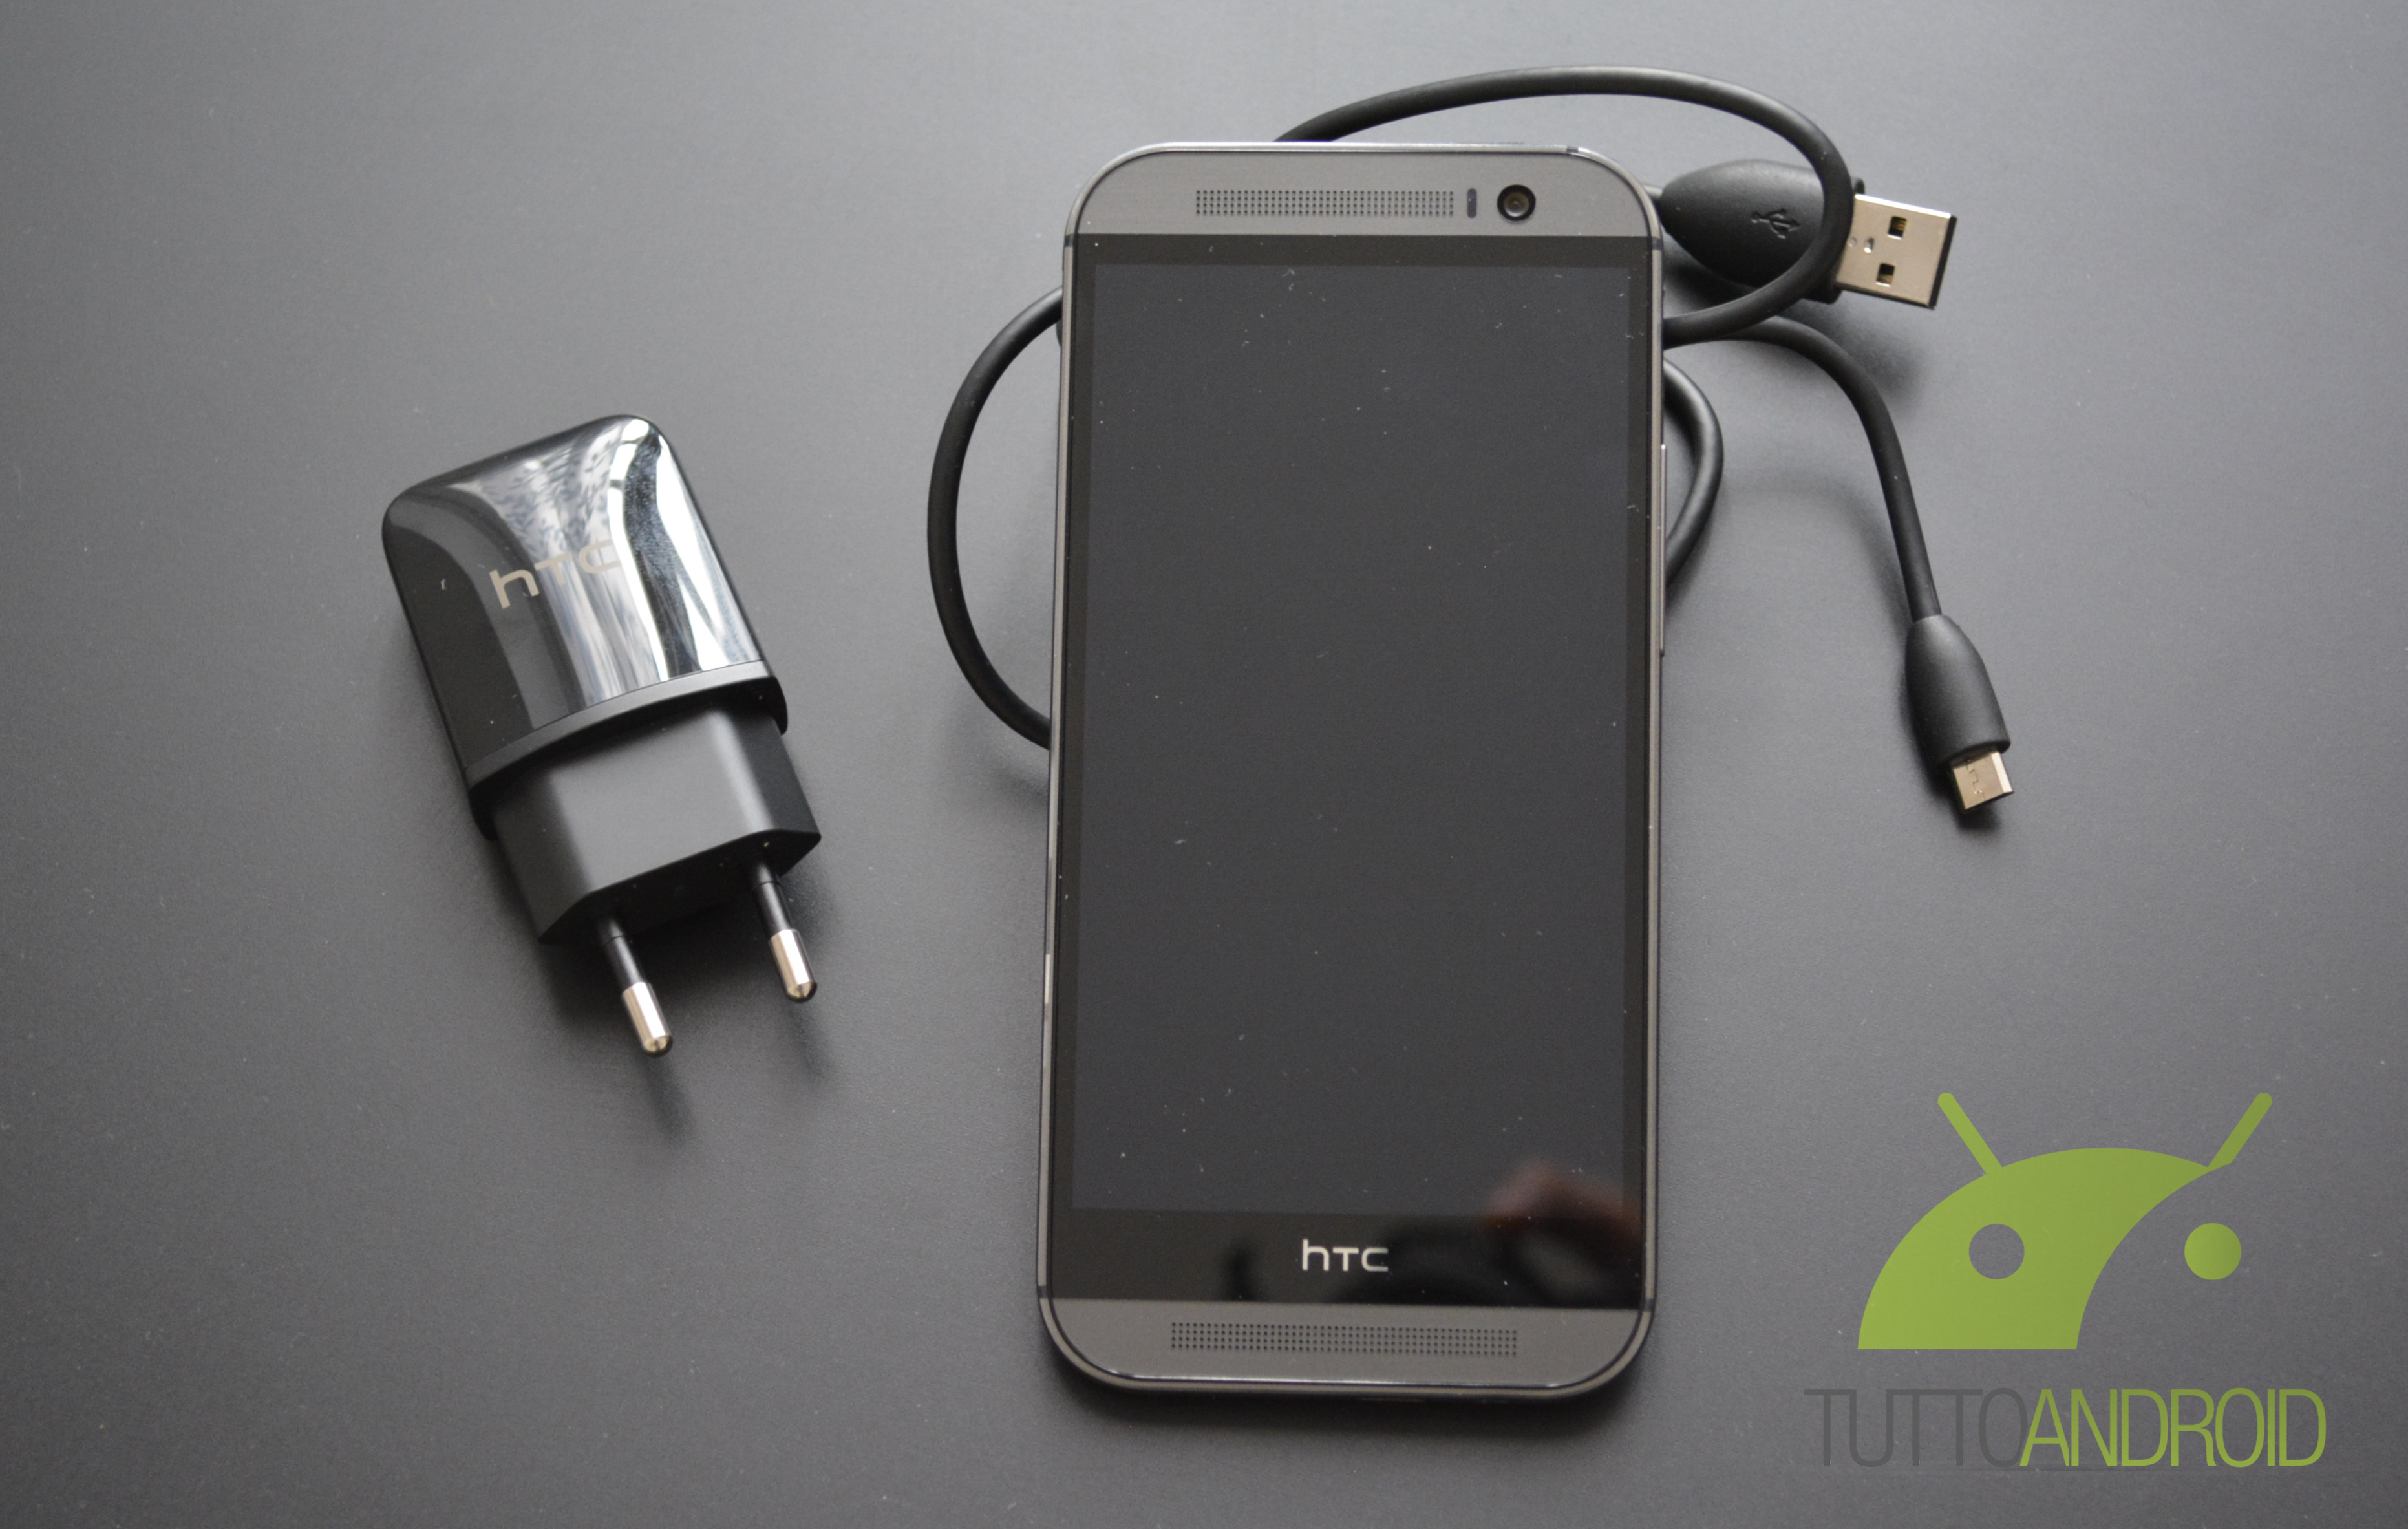 htc-one-m8-unbox